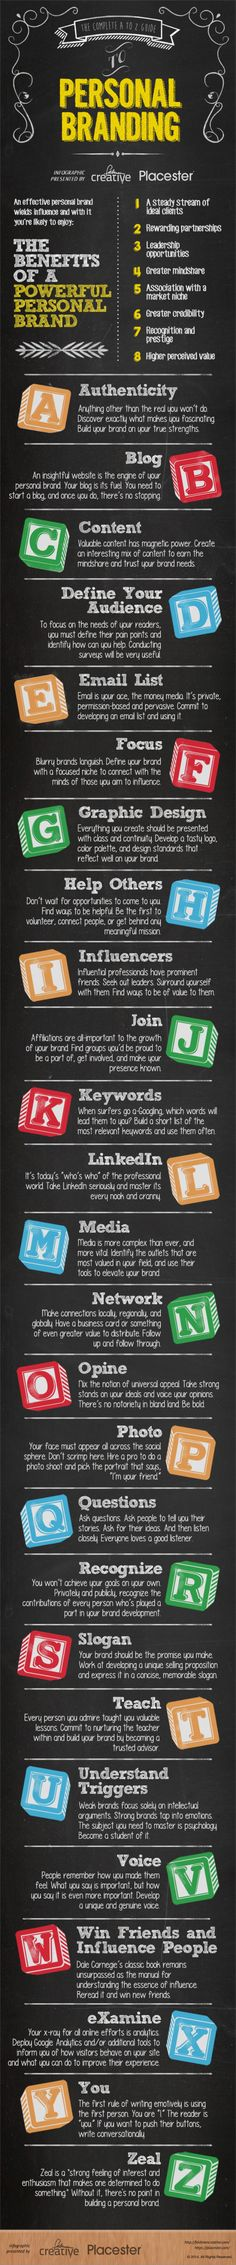 The complete A to Z guide to Personal Braqnding #infografia #infographic #marketing